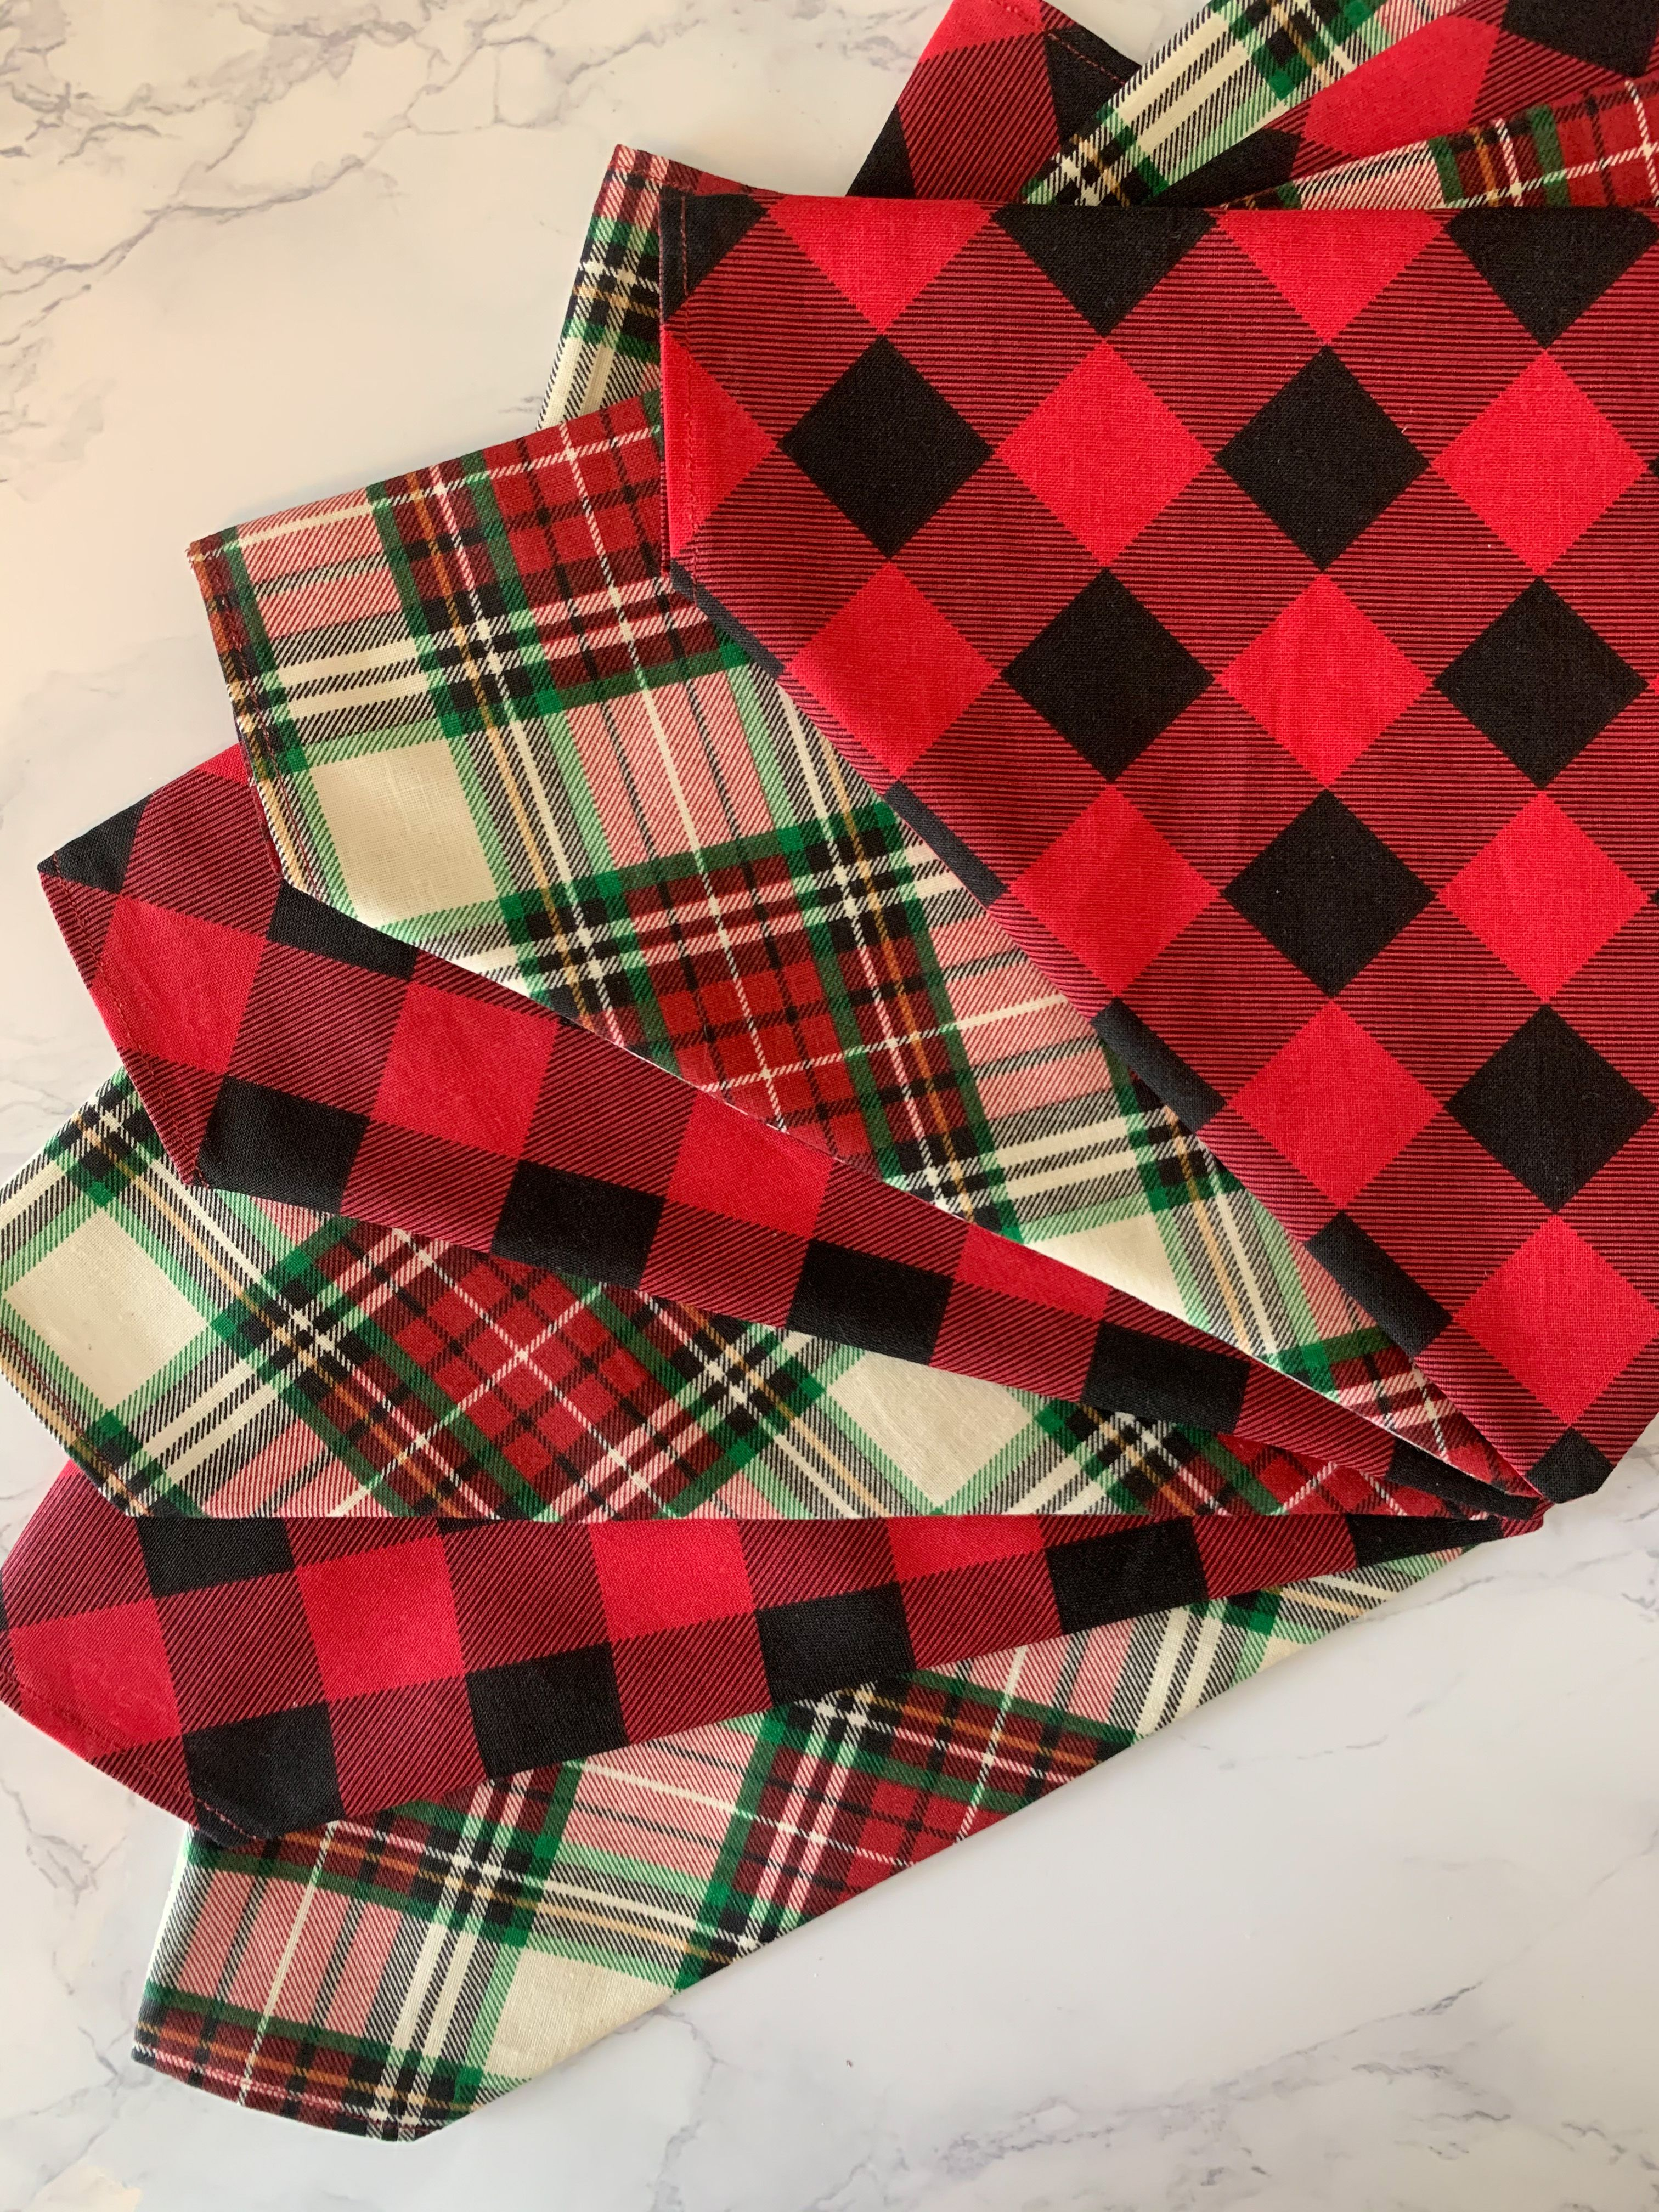 The perfect christmas plaid for your dog to be feeling and looking festive this holiday season! Each bandana fits right over the dog's collar, making it safe and easy to wear. Be sure to check out the rest of the holiday collection at Sit Stay Bay! #sitstaybay #dogbandanas #buffaloplaid #christmasplaid #christmasdog #merrychristmas #christmasshopping #dogsfirstchristmas #buffalocheck #buffaloplaidchristmas #buffaloplaiddog #giftsfordogs #dogmusthaves #etsyfinds #shopsmall #dogplaid